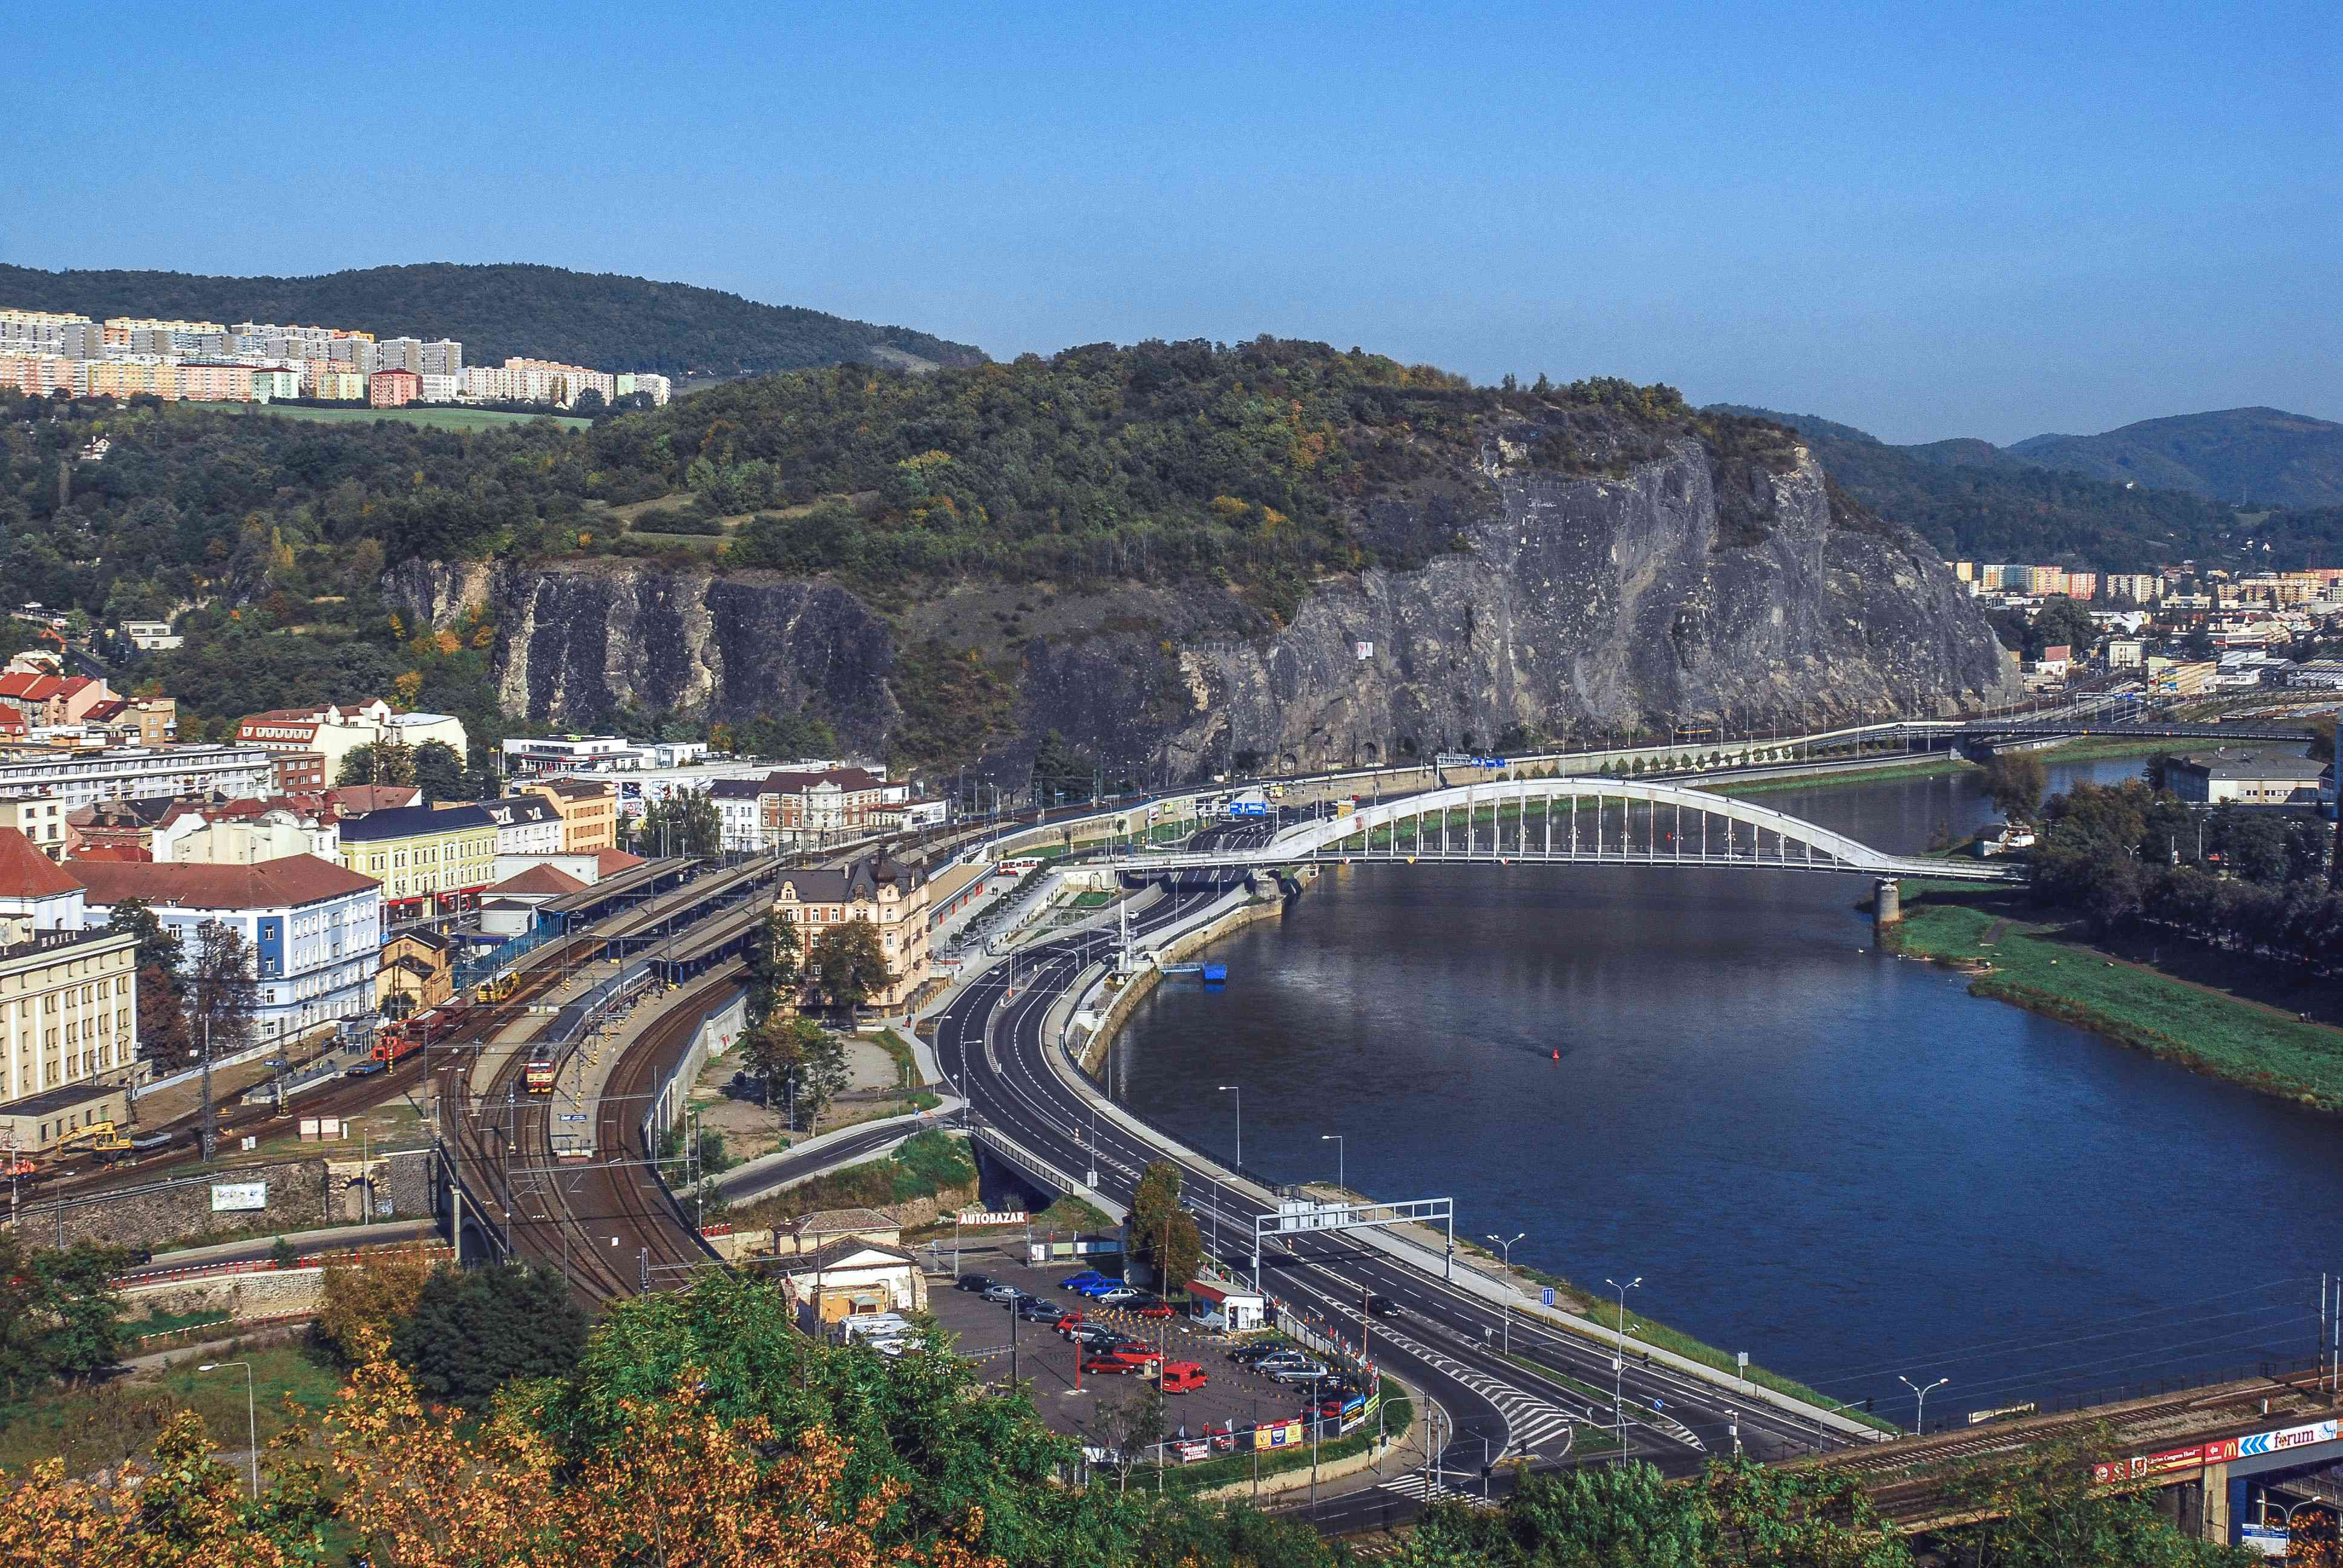 View over the train station of Usti nad Labem in the Czech Elbe Valley